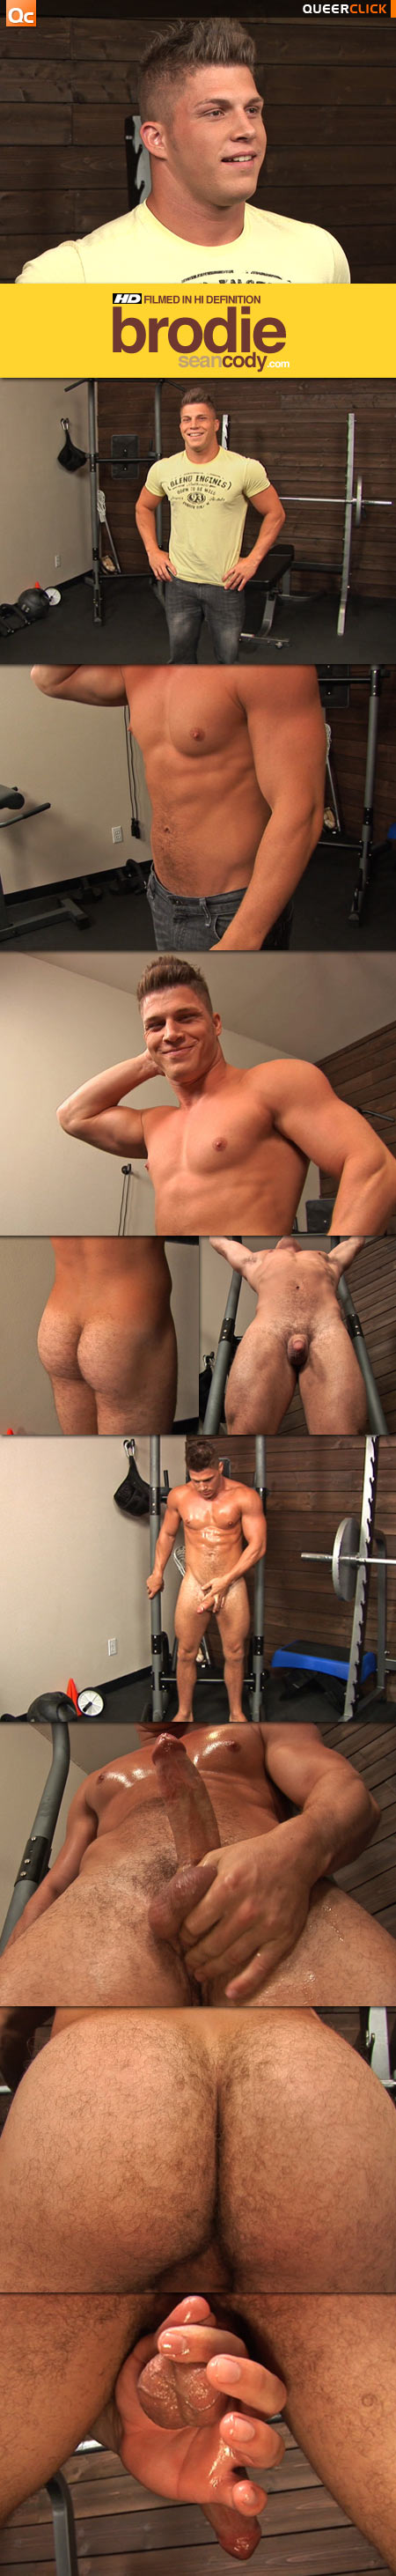 Sean Cody: Brodie